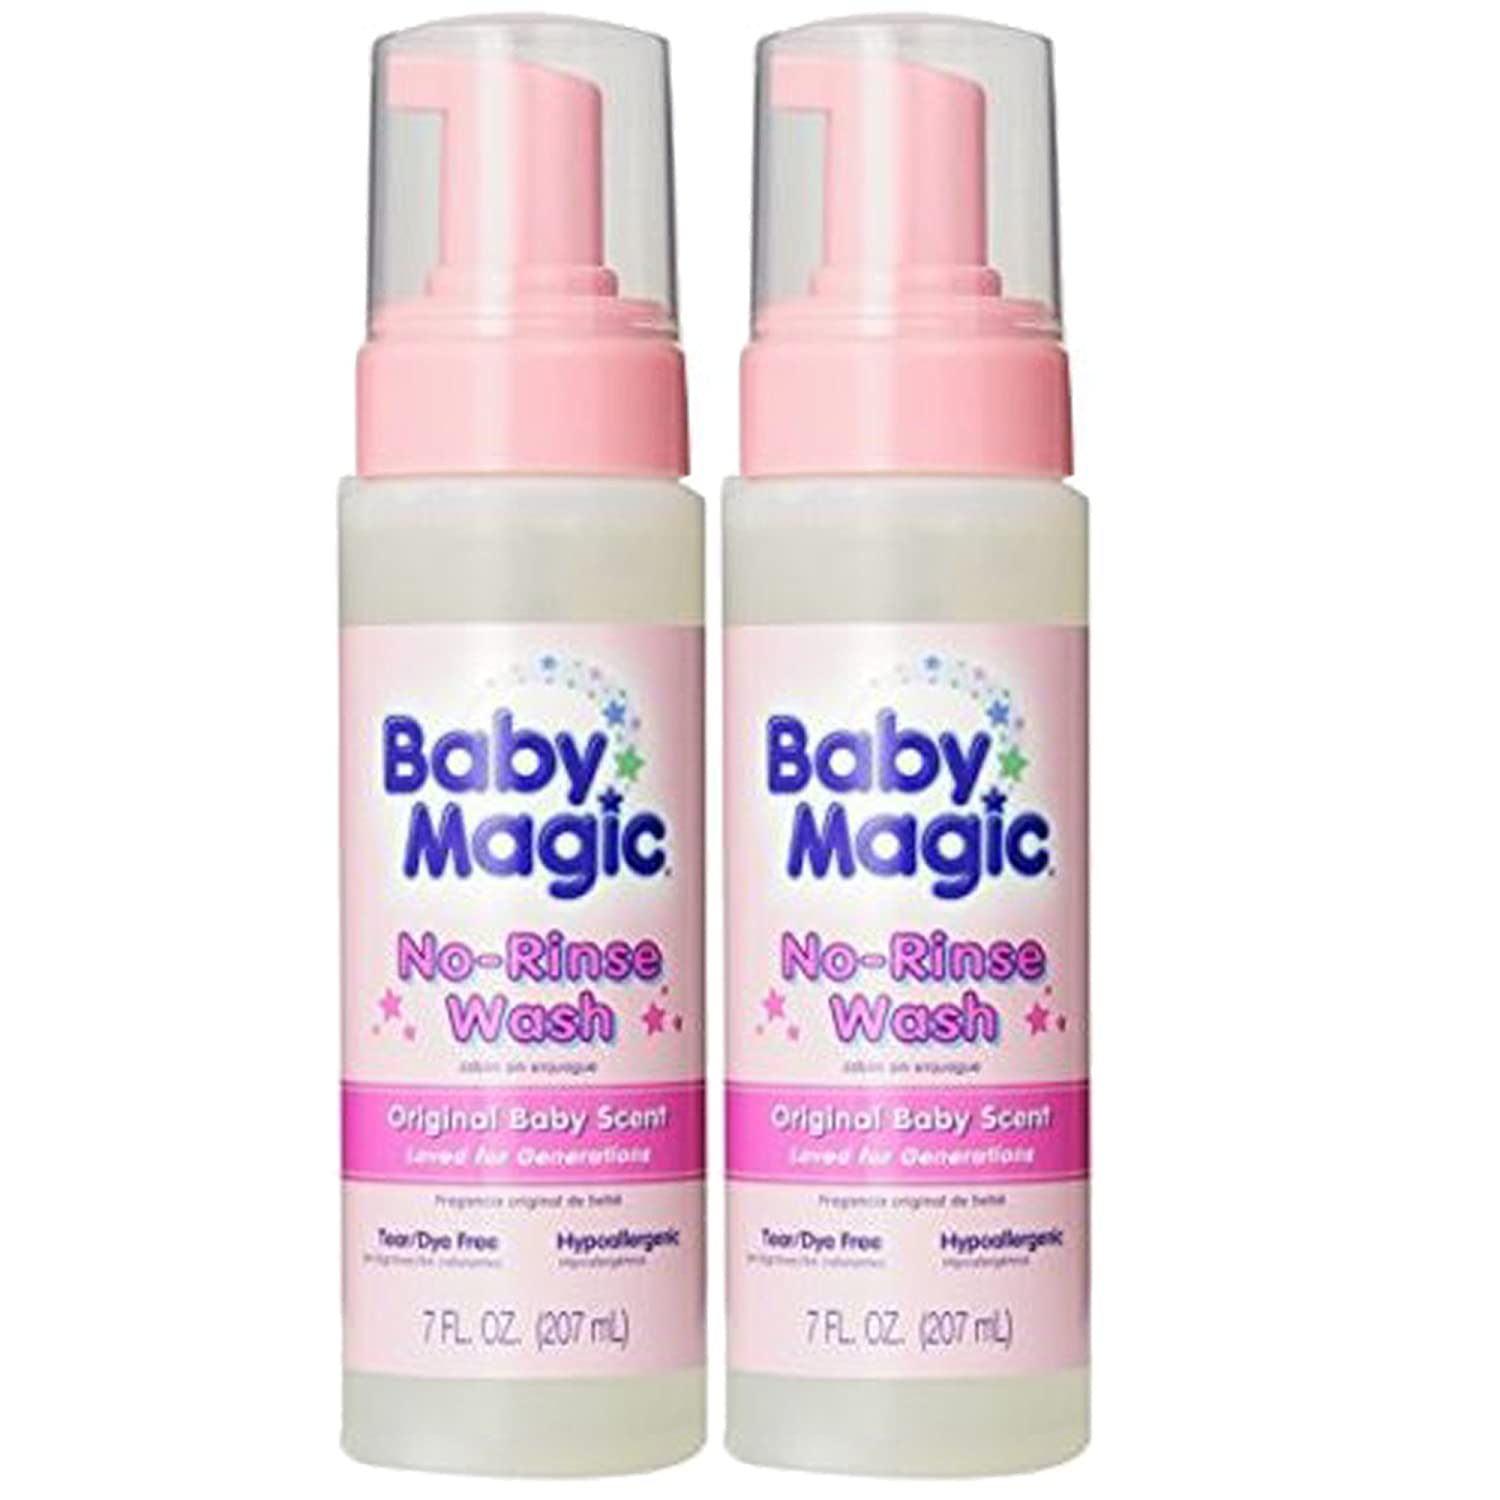 Baby Magic No-Rinse Wash, Original Baby Scent, 7 Ounces, 2-Pack